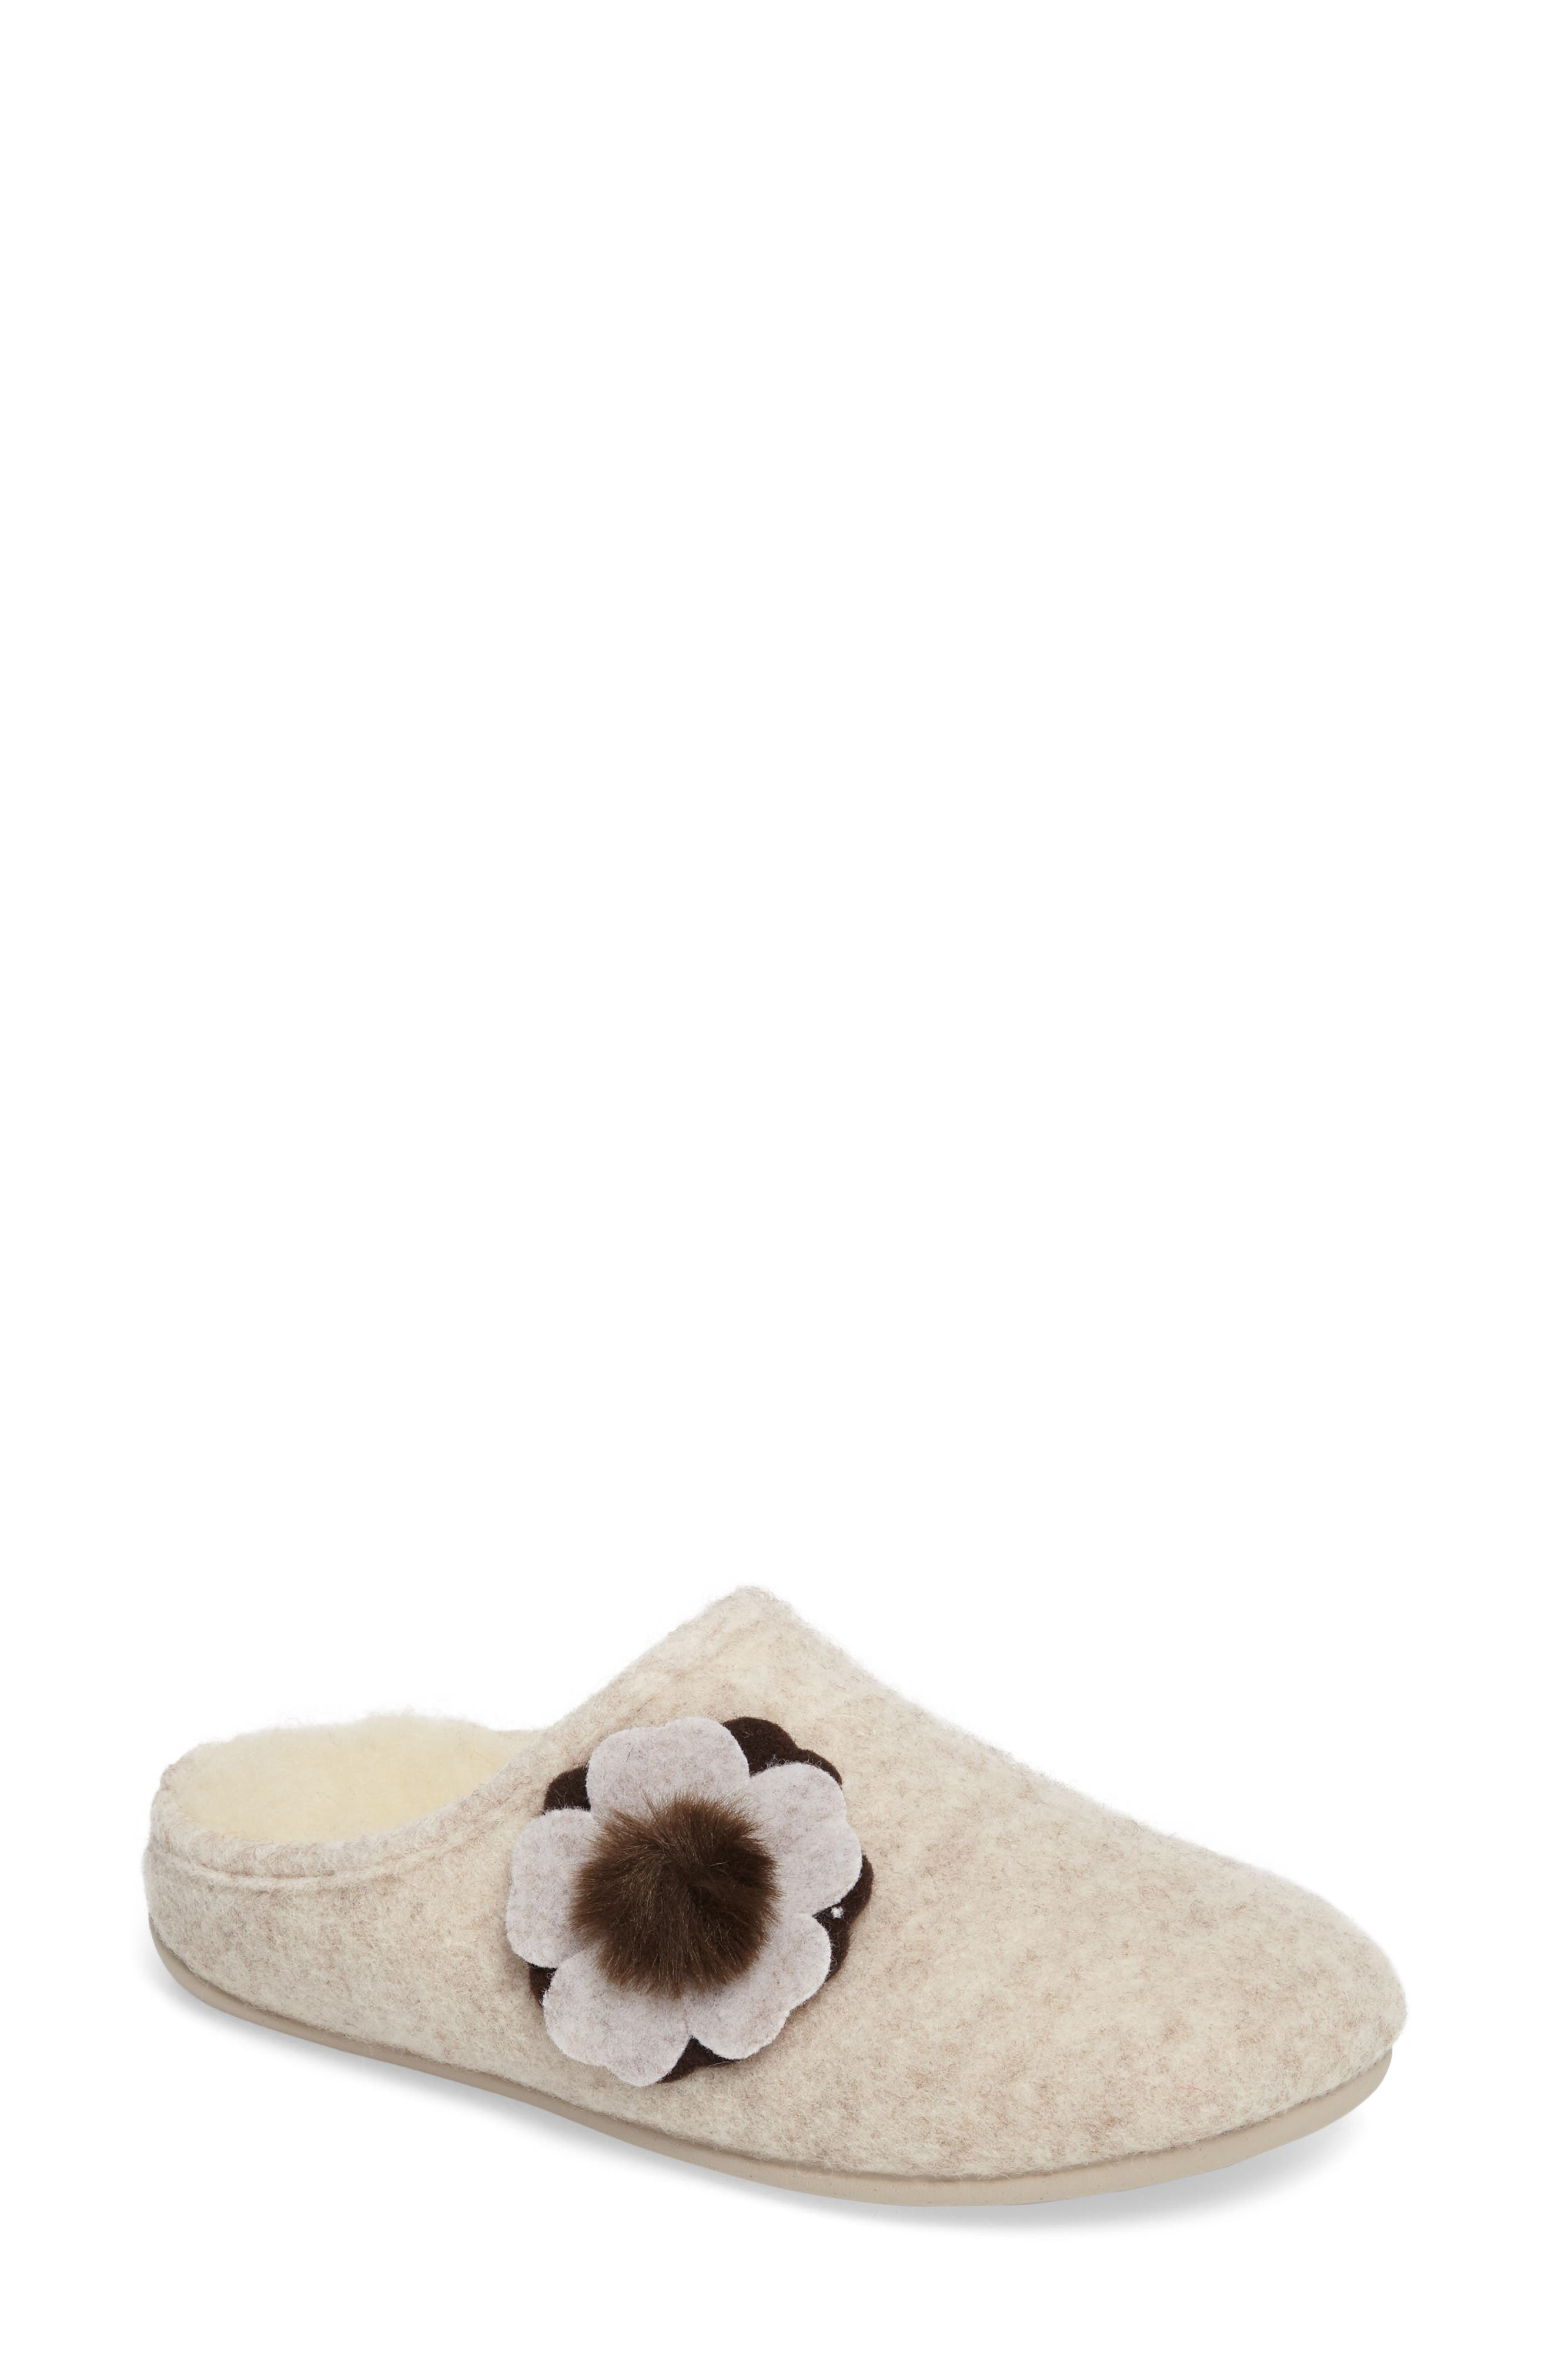 Emma Slipper,                         Main,                         color, Cream Fabric